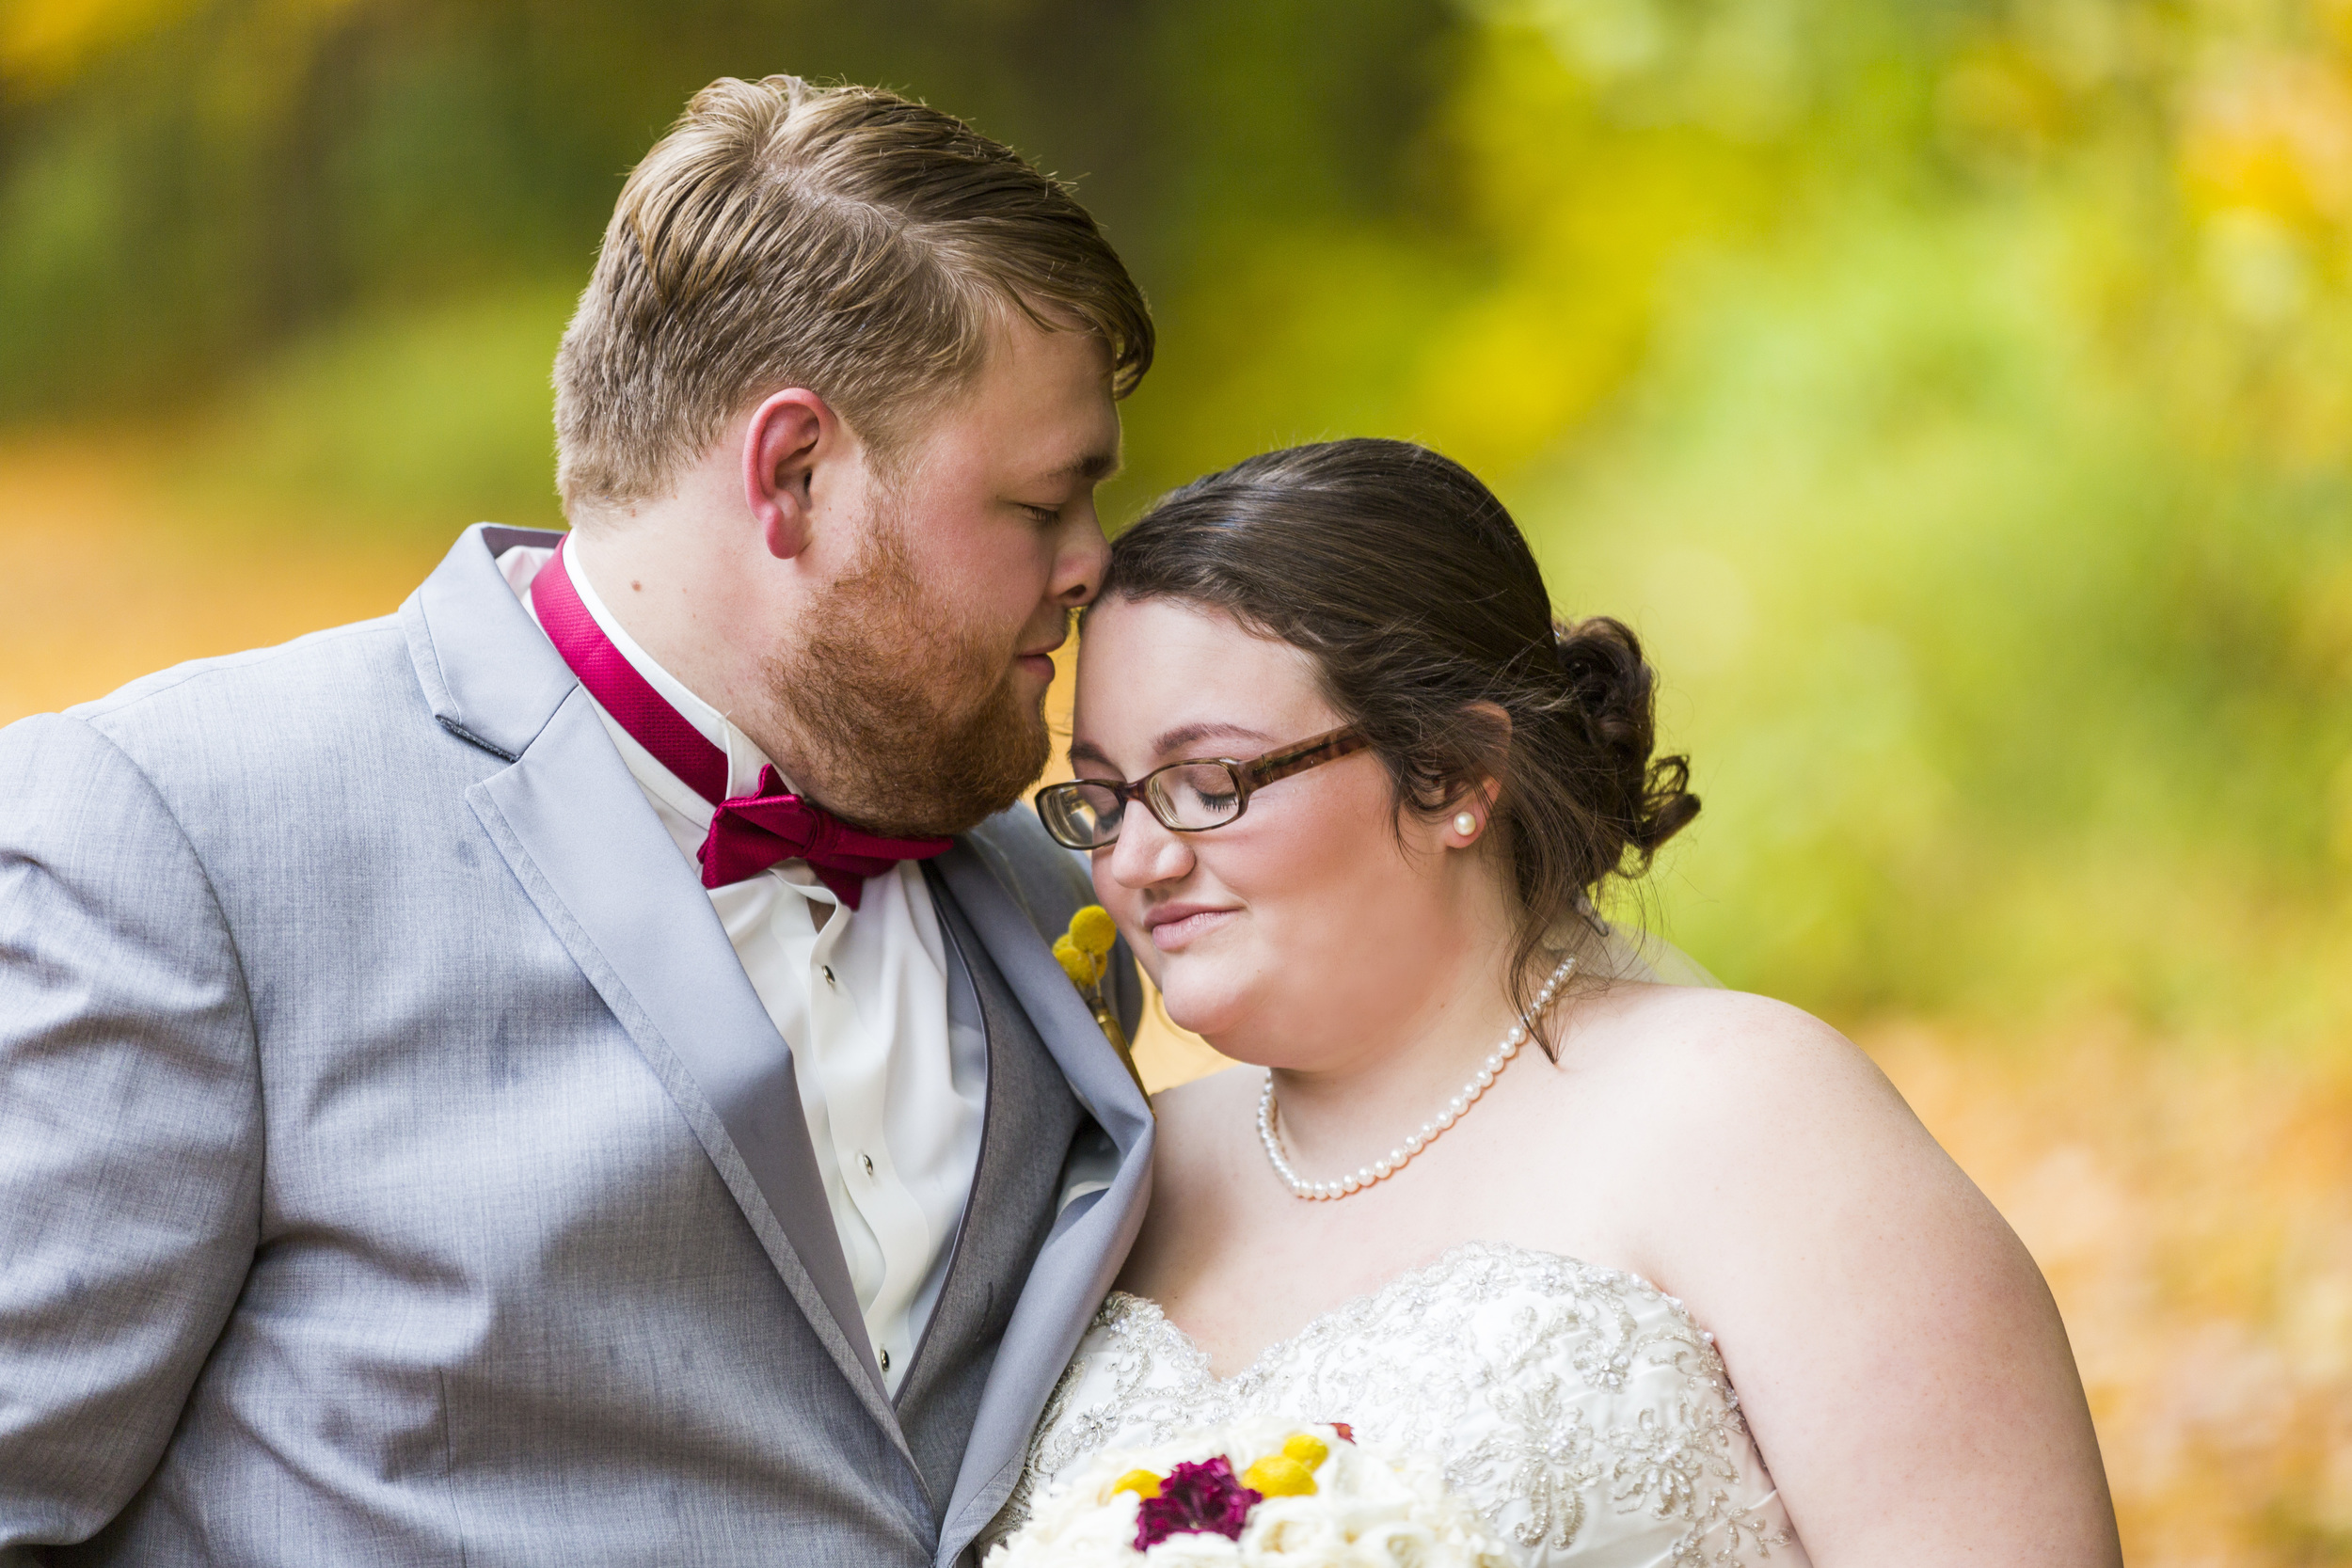 A WAY TO REMEMBER: Pictured are Lucas and Chelsea Waterman during their wedding in 2014.